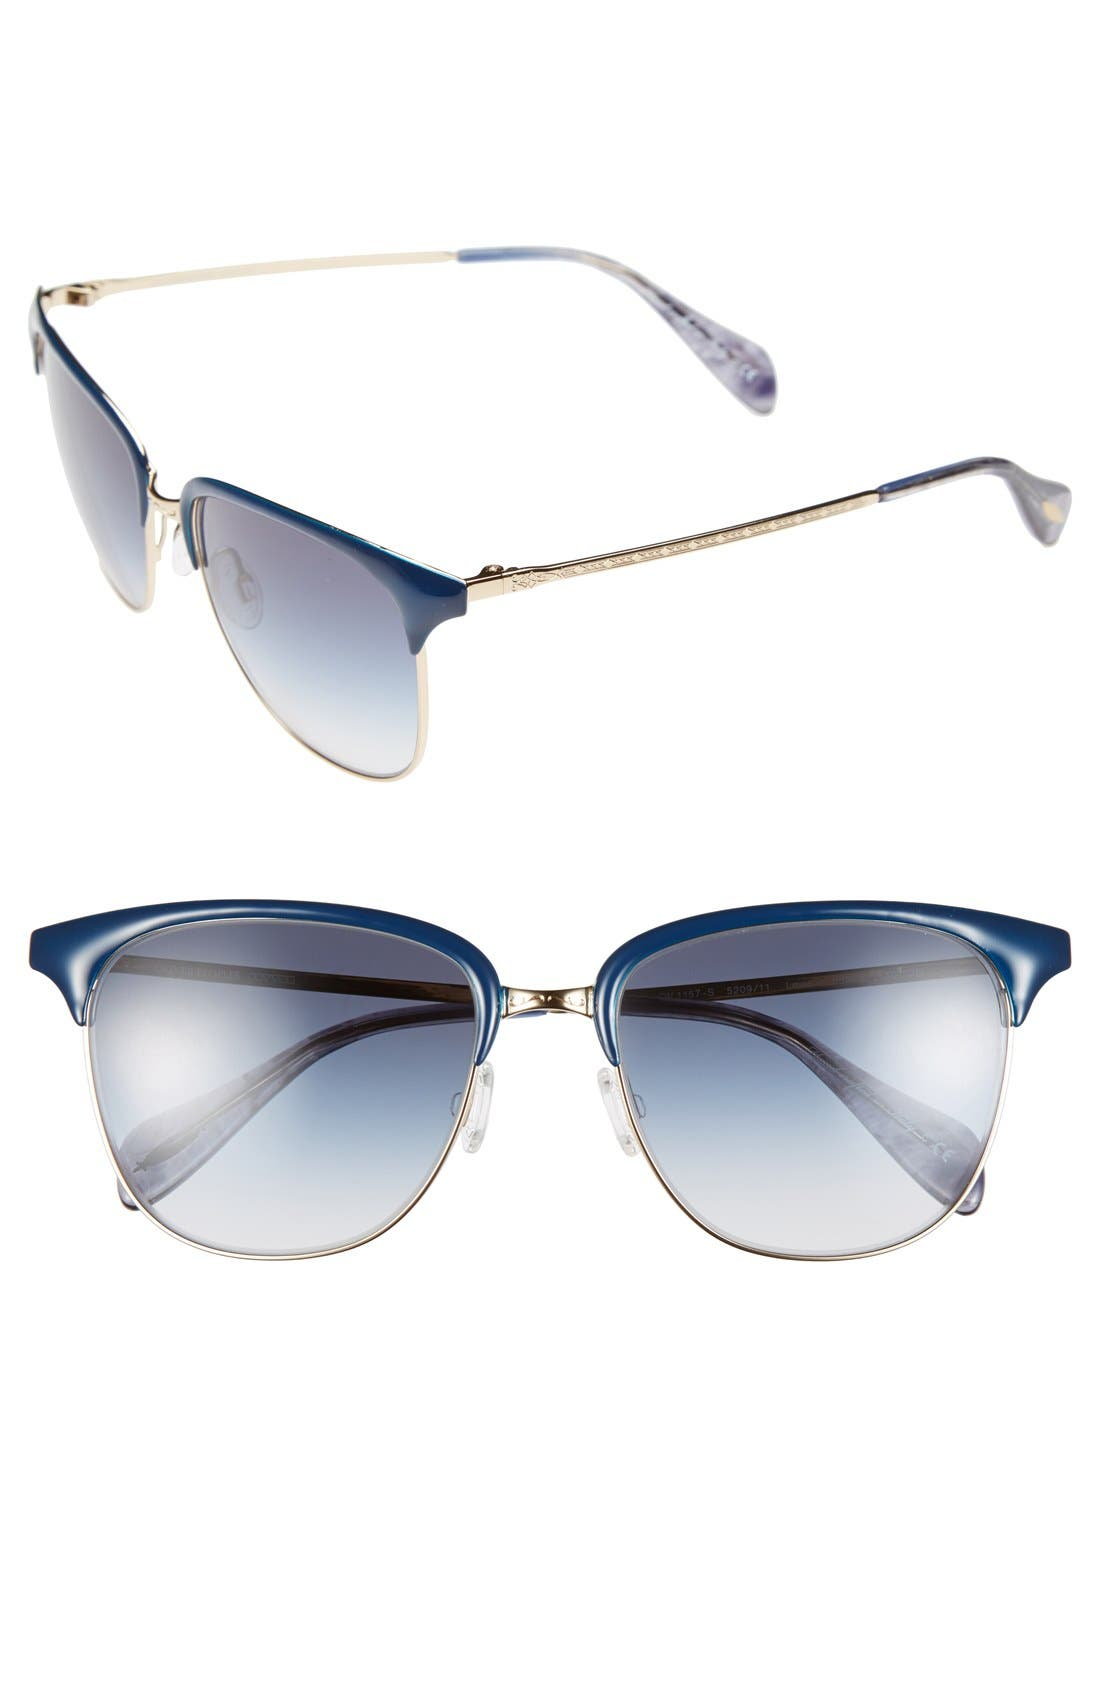 Main Image - Oliver Peoples 'Leiana' 55mm Sunglasses